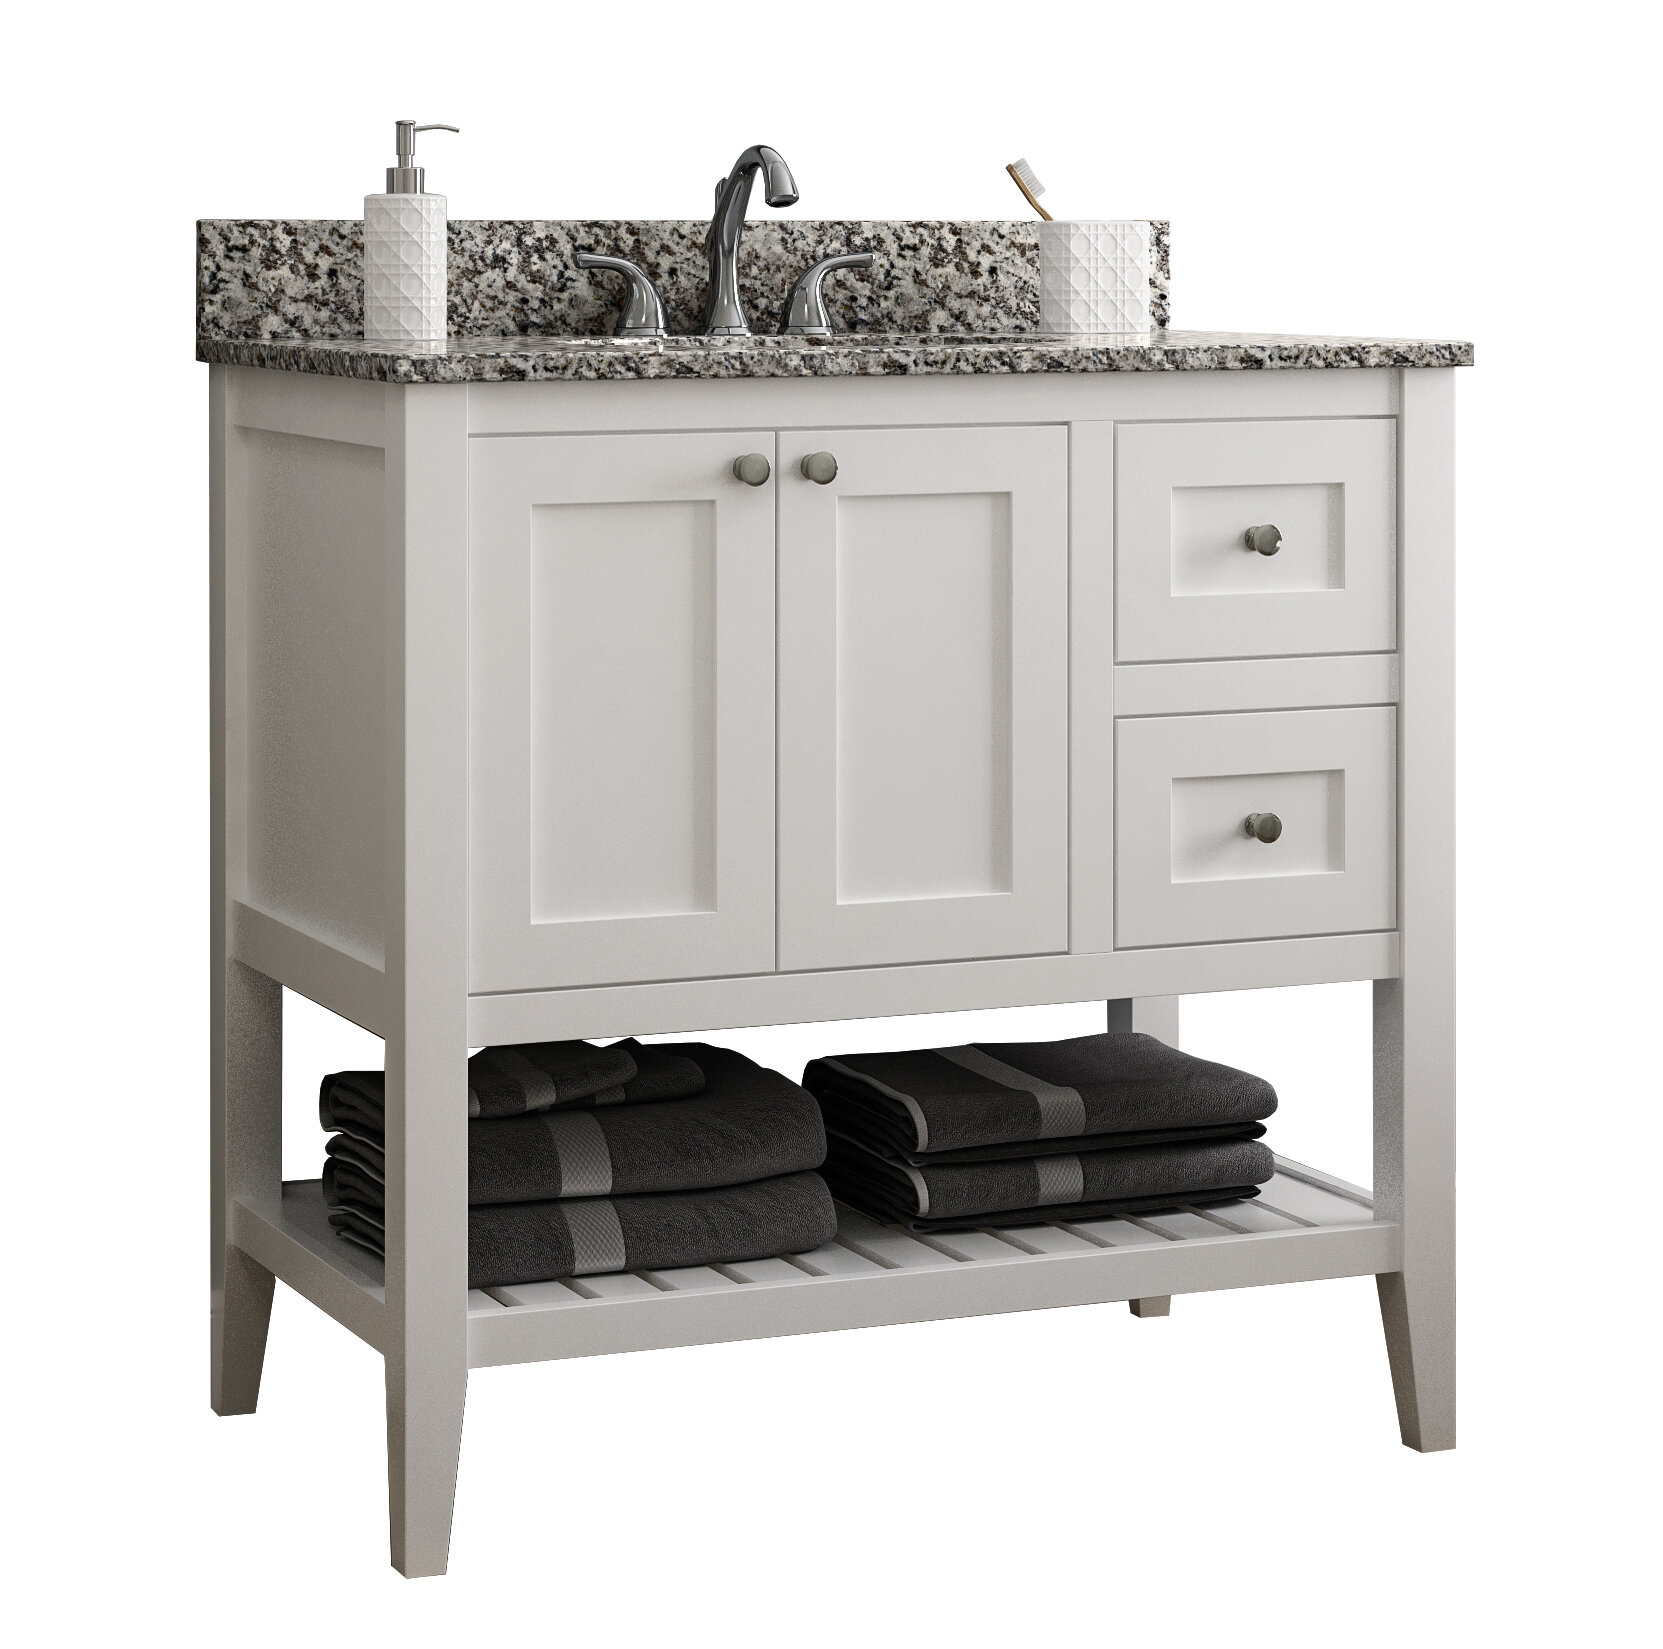 Cnc Cabinetry Vanguard 36 Single Bathroom Vanity Base Only